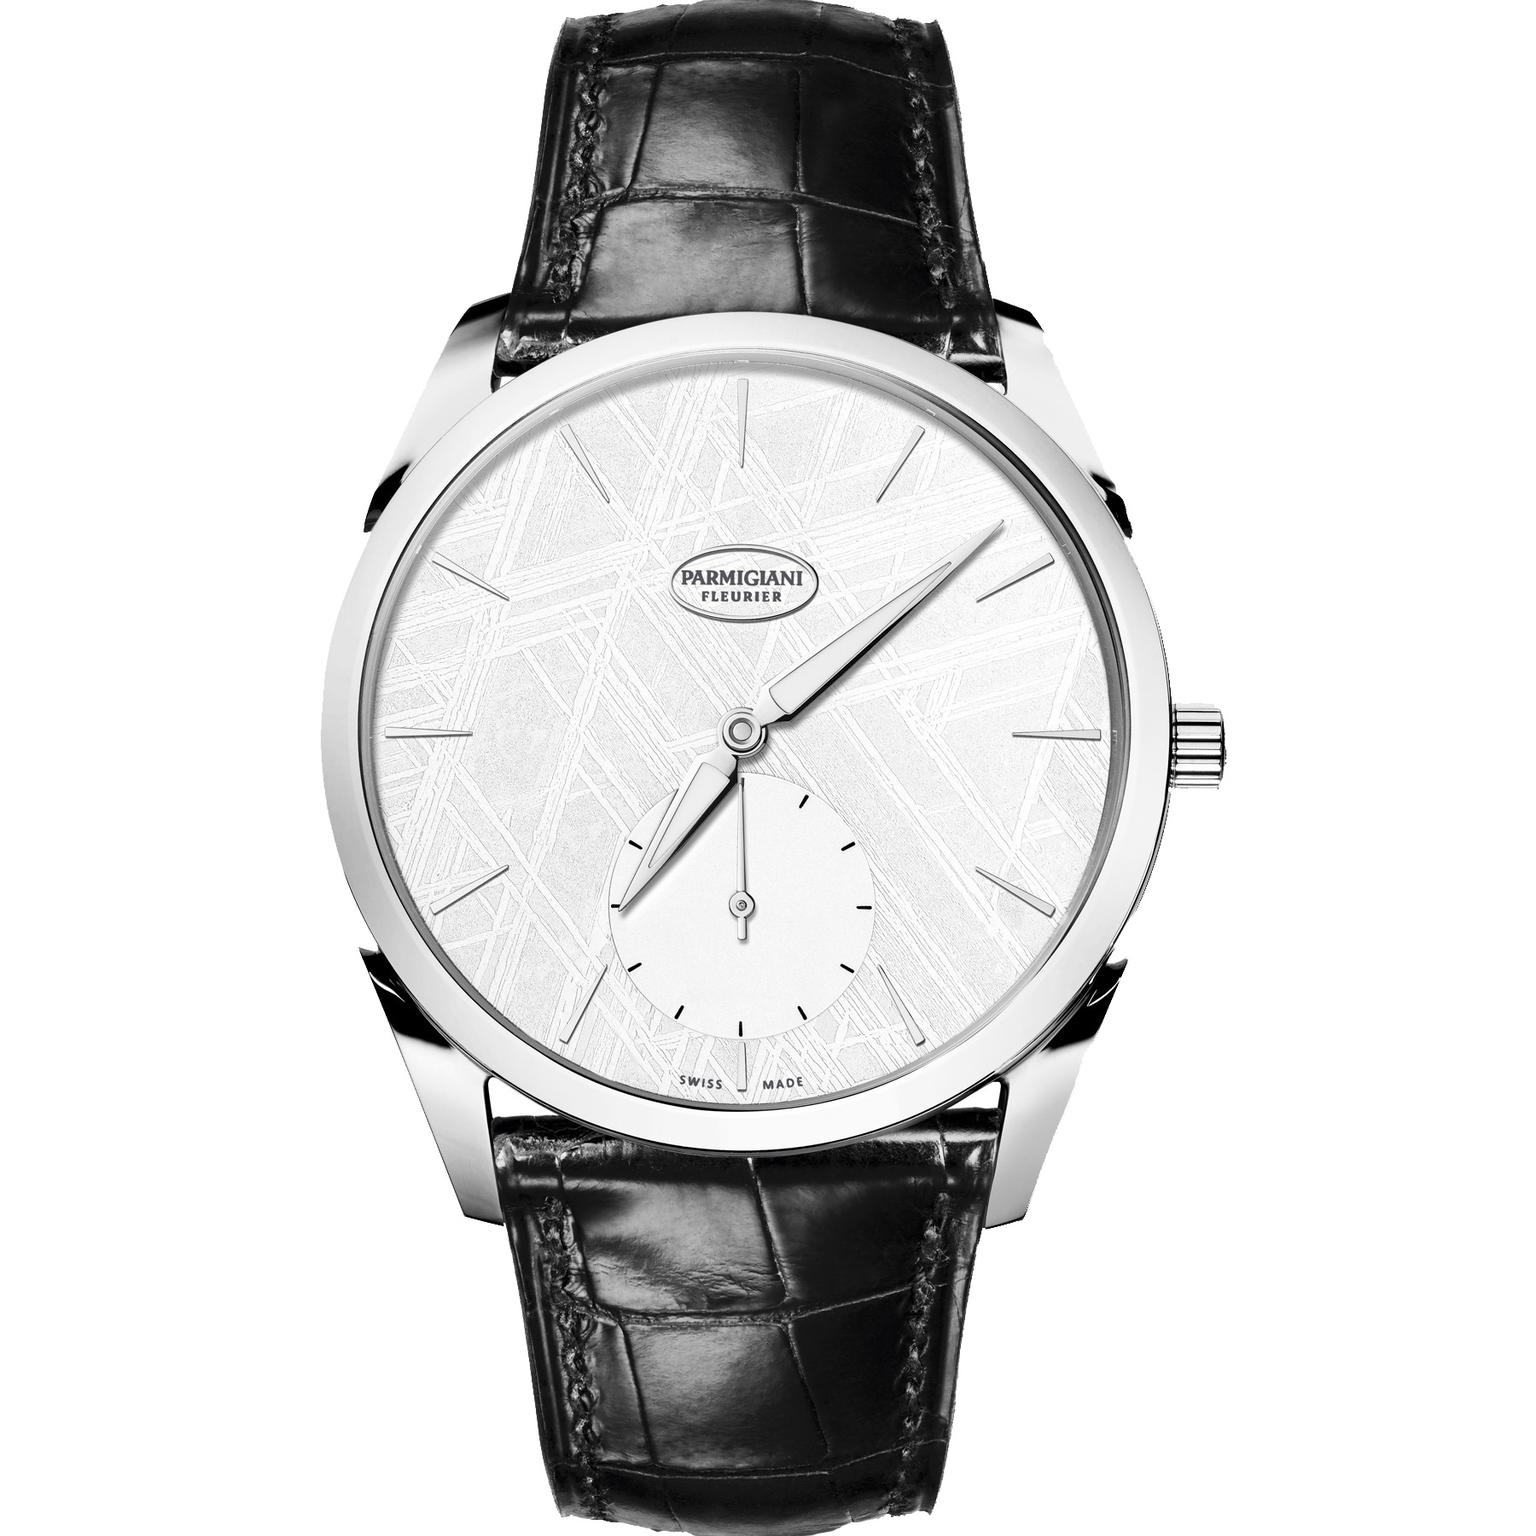 Parmigiani Tonda 1950 Meteorite watch in white